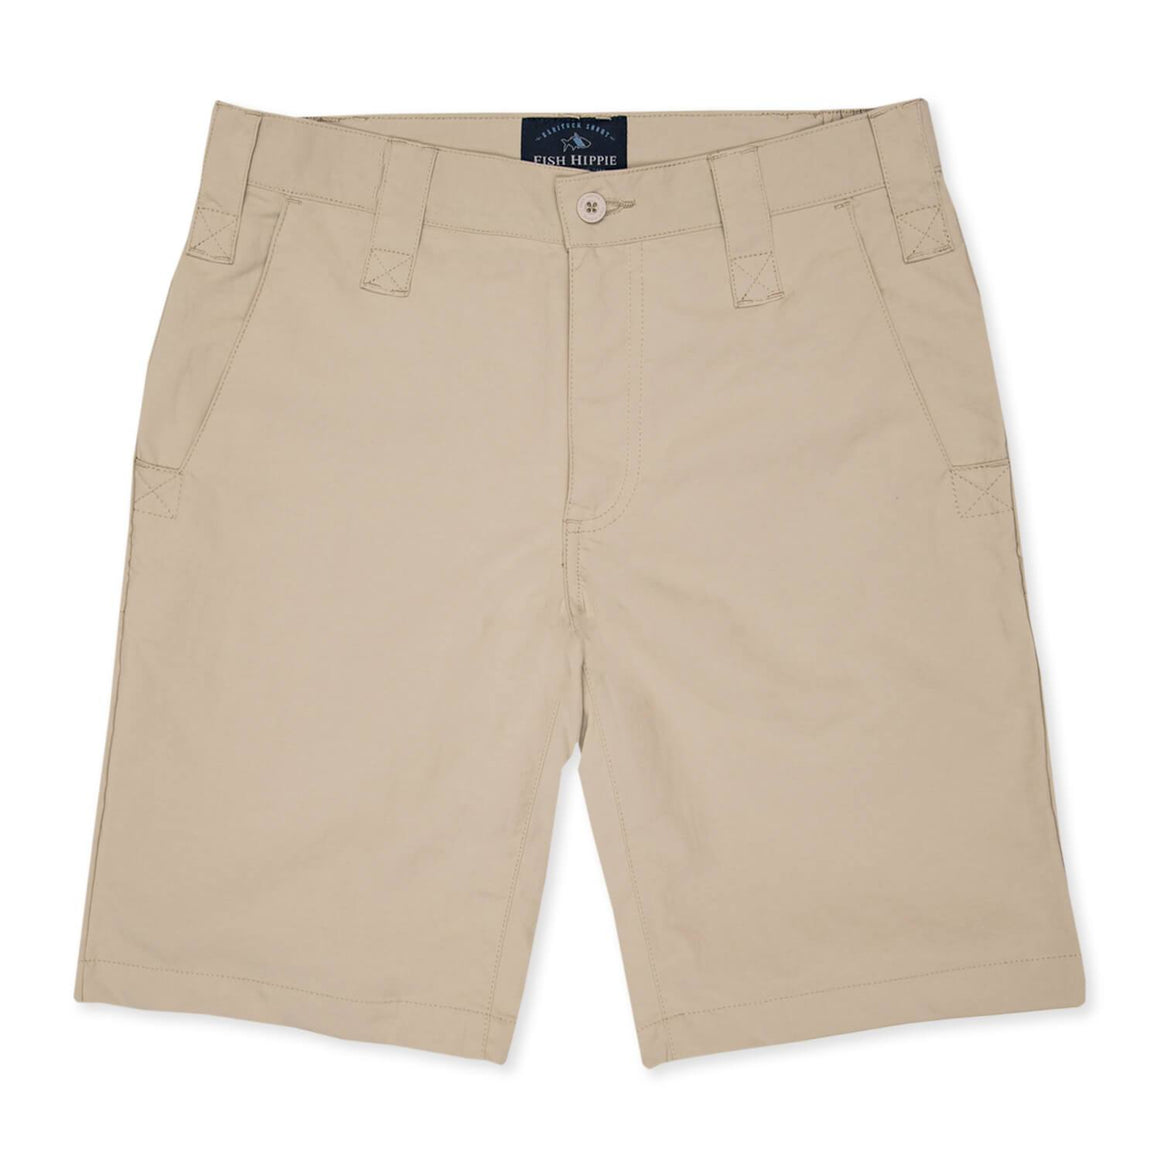 Fish Hippie Barituck Performance Short